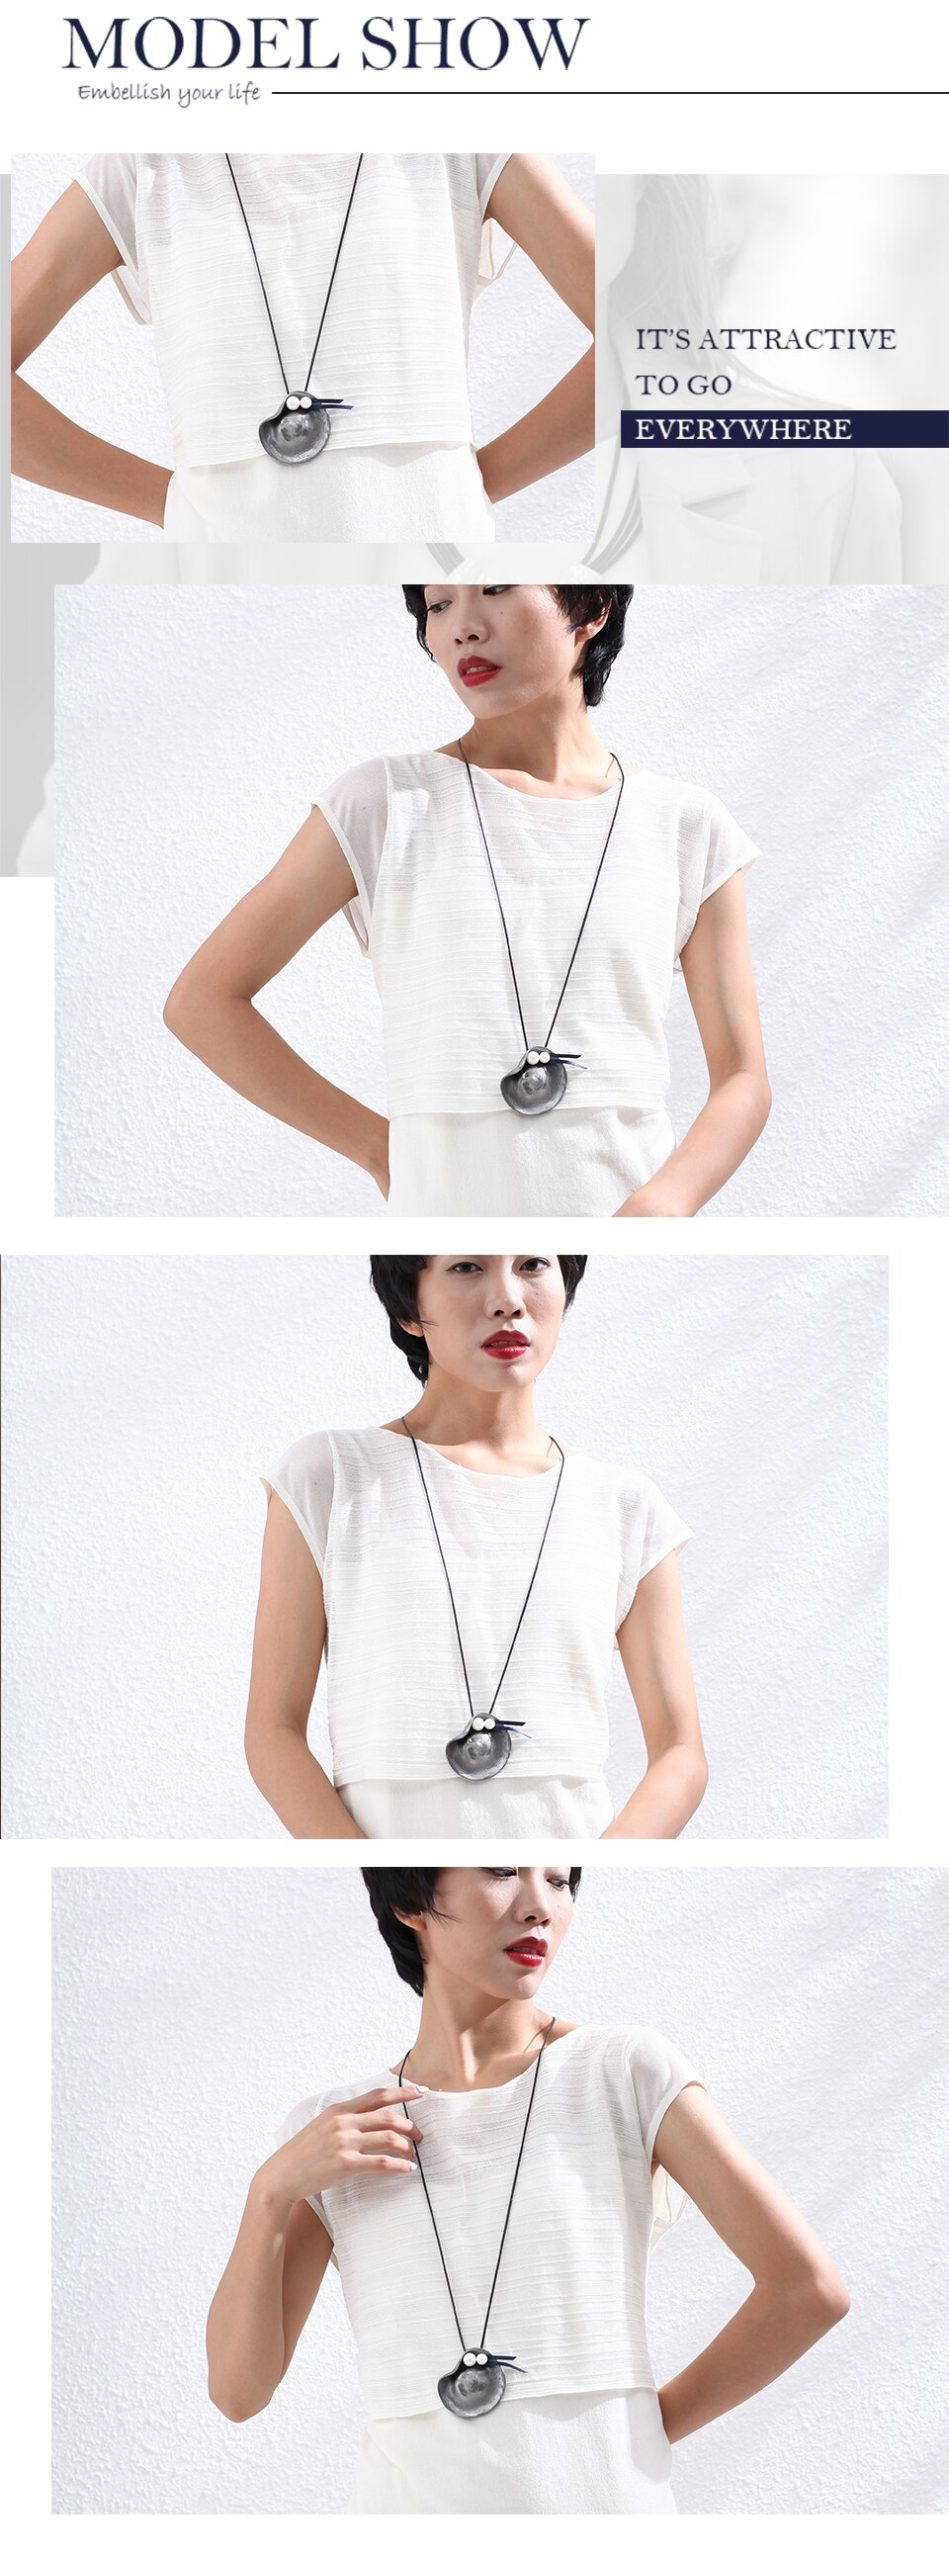 Hat Pendant Long Necklace for Women Vintage Jewelry White Beads Suspension Rope Chains Choker Wholesale Jewellery 2020 Hotsale